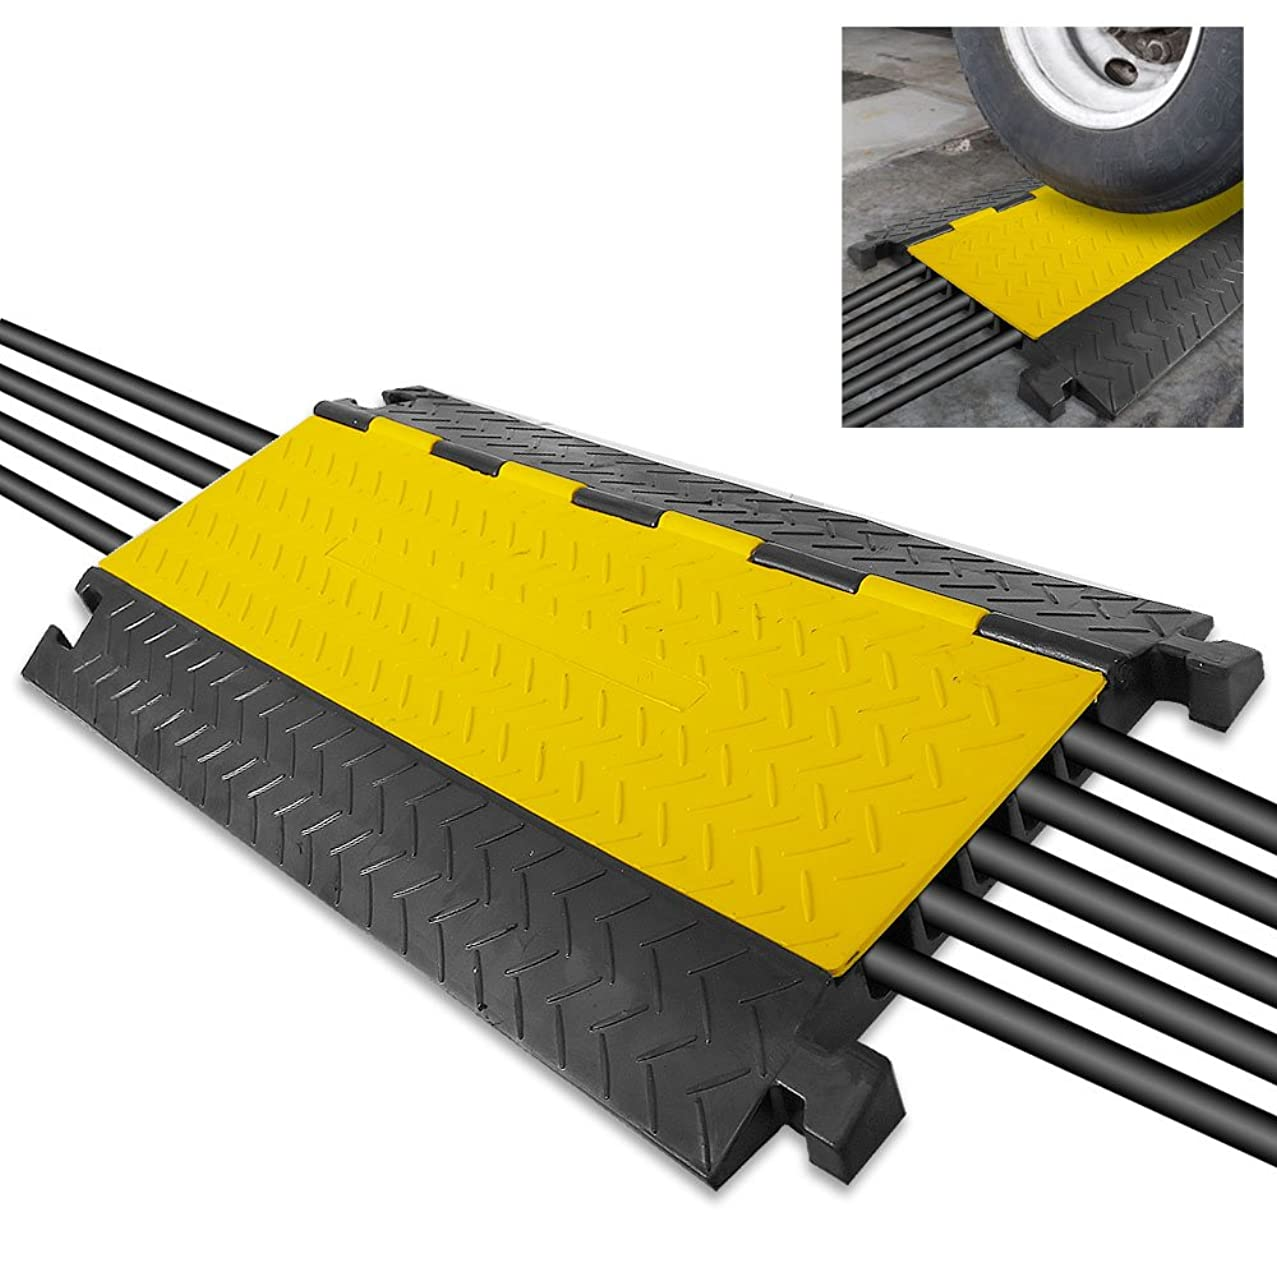 """Durable Cable Protective Ramp Cover - Supports 33000lbs Five Channel Heavy Duty Cord Protection w/Flip-Open Top Cover, 31.5"""" x 17.5"""" x 1.77"""" Cable Concealer for Indoor Outdoor Use - Pyle PCBLCO109"""